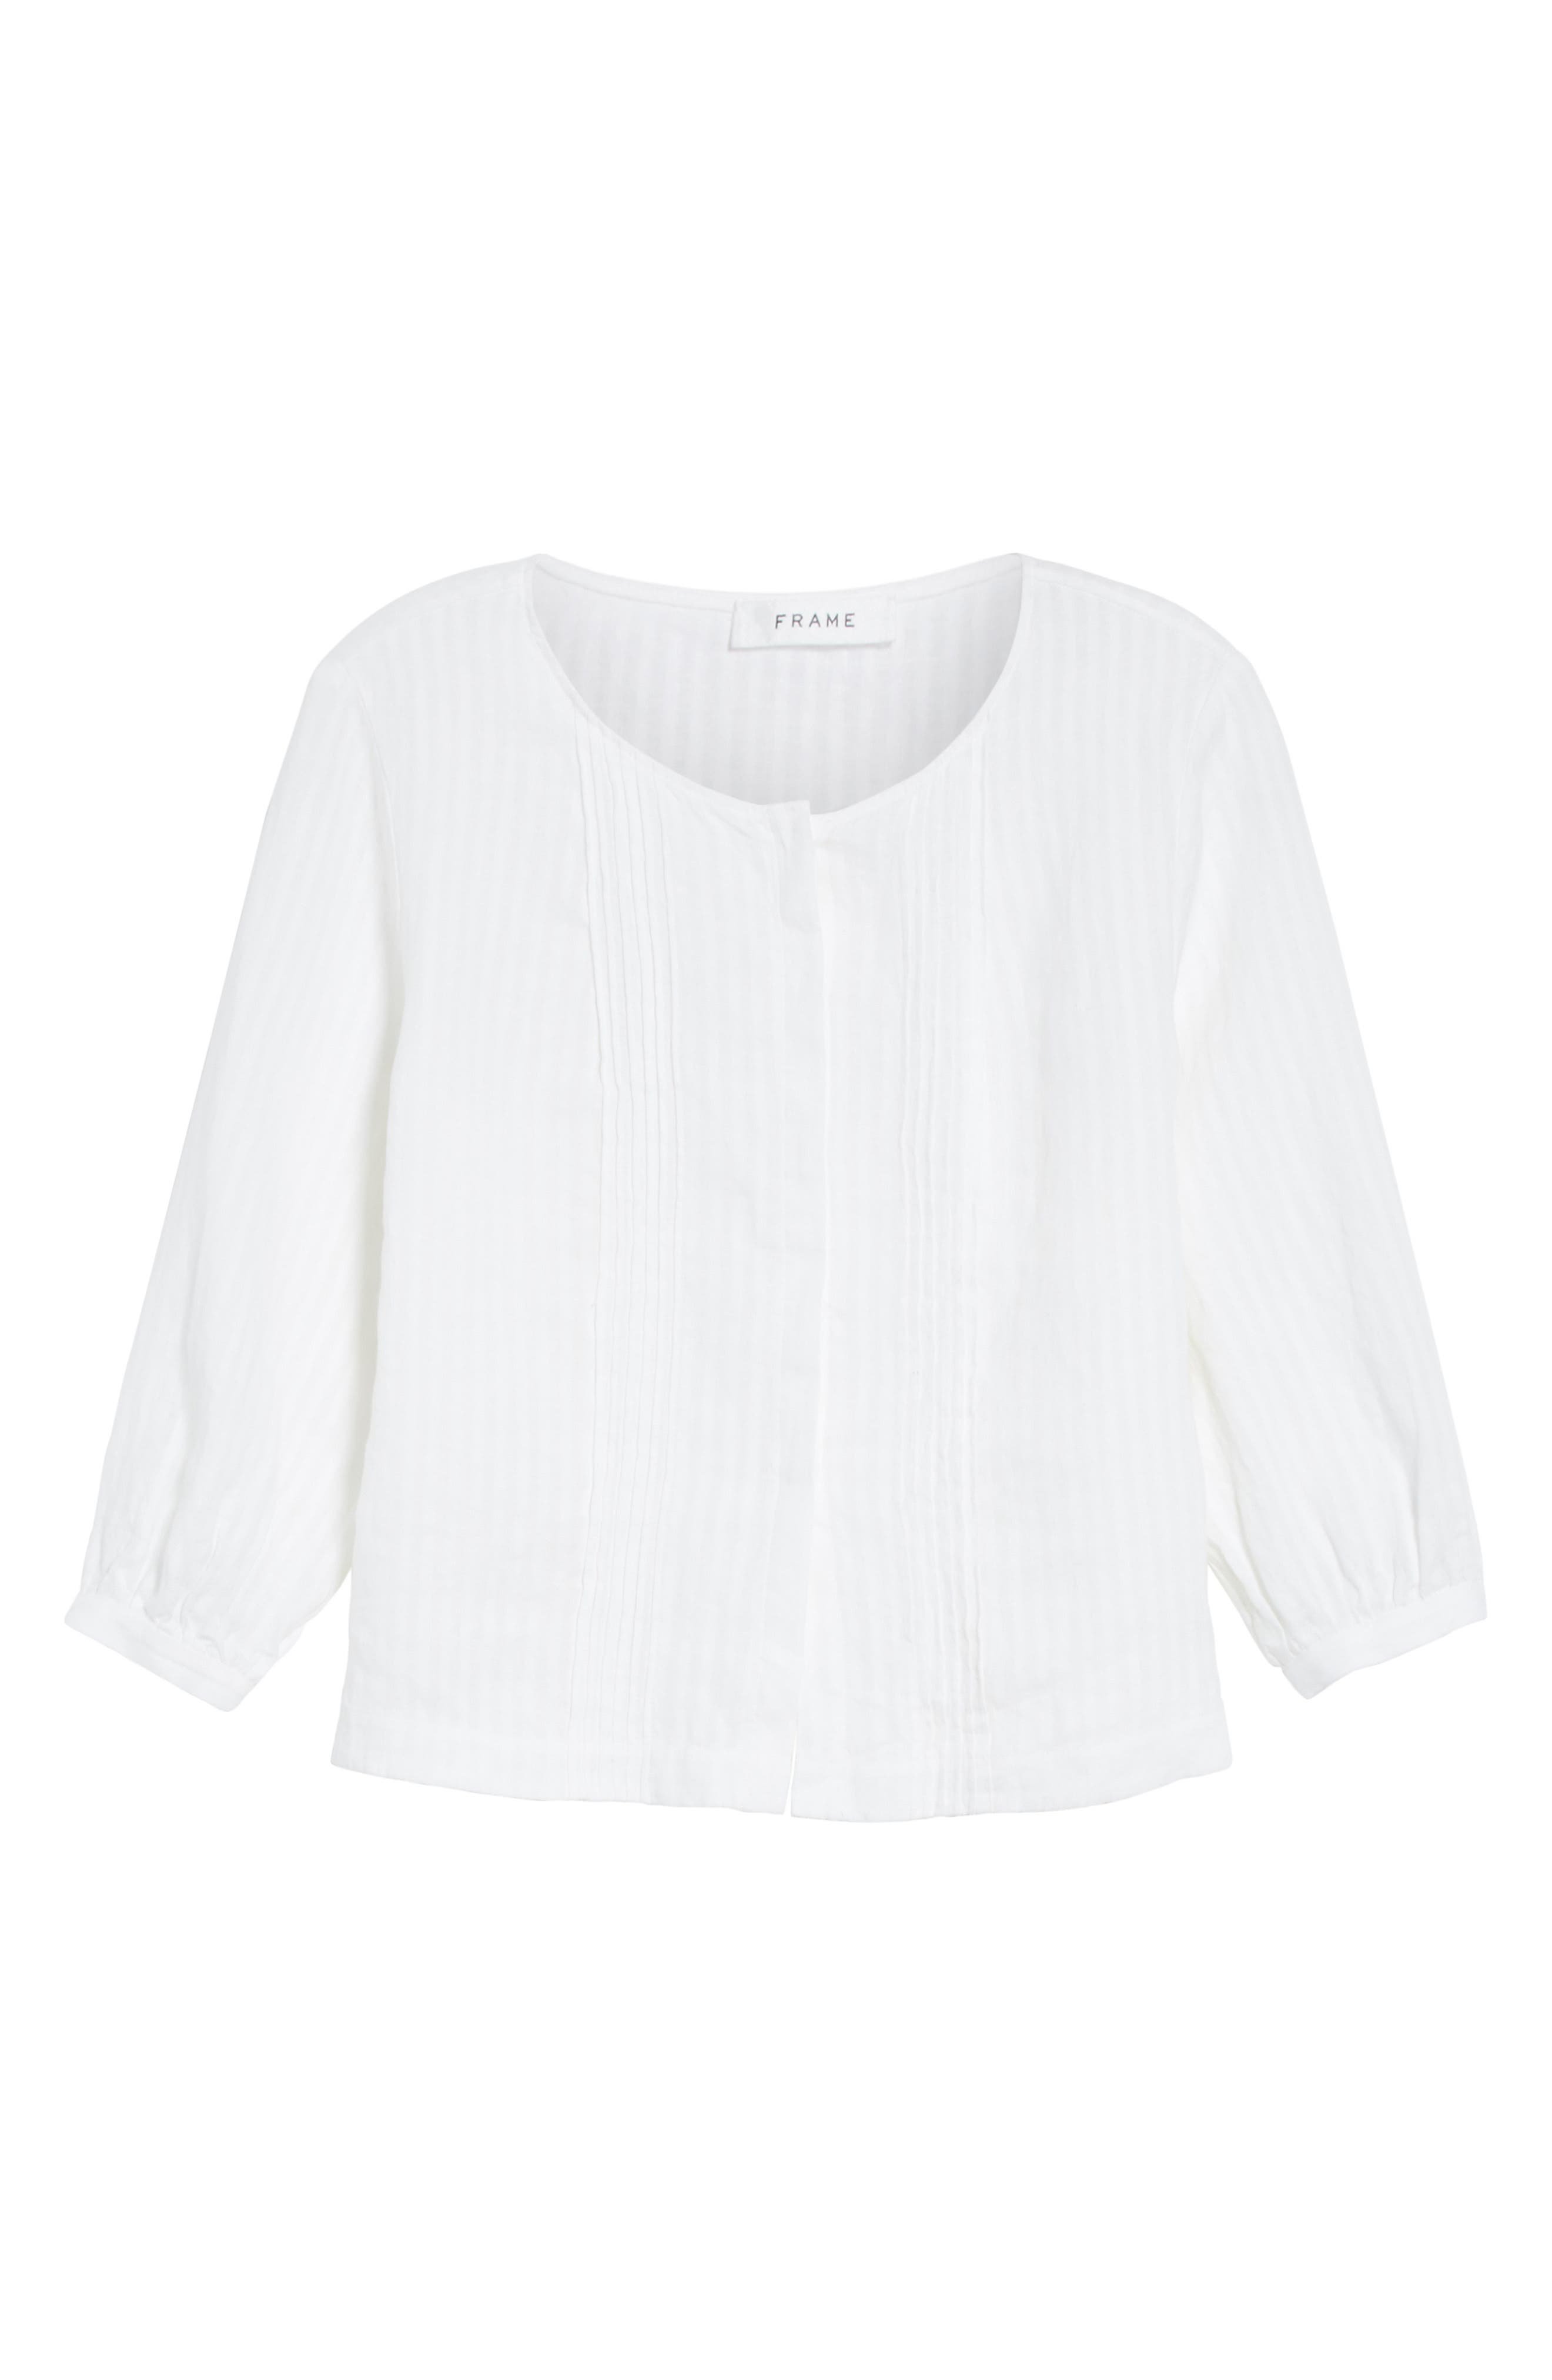 Pintucked Linen Top,                             Alternate thumbnail 6, color,                             Blanc